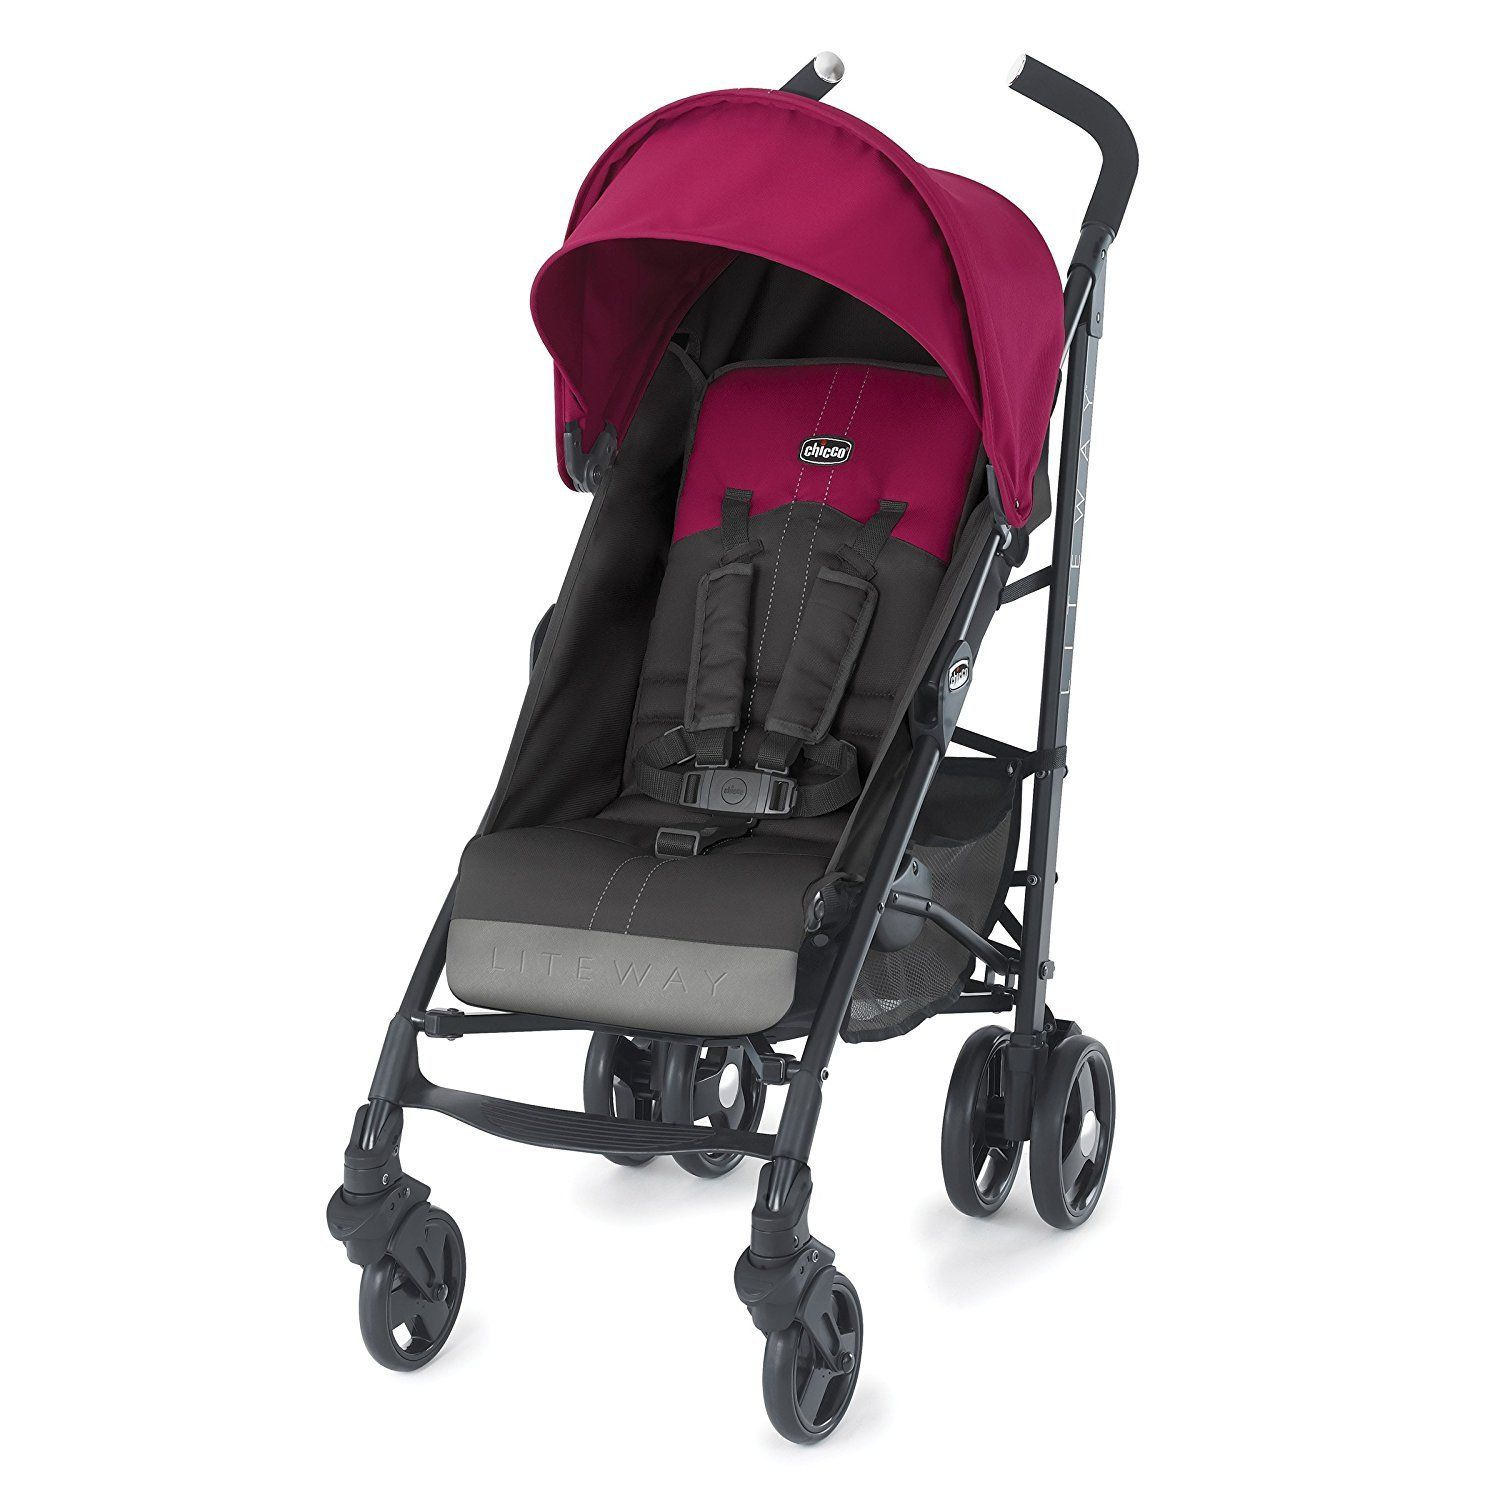 Chicco Liteway Stroller, Jasmine followback cash